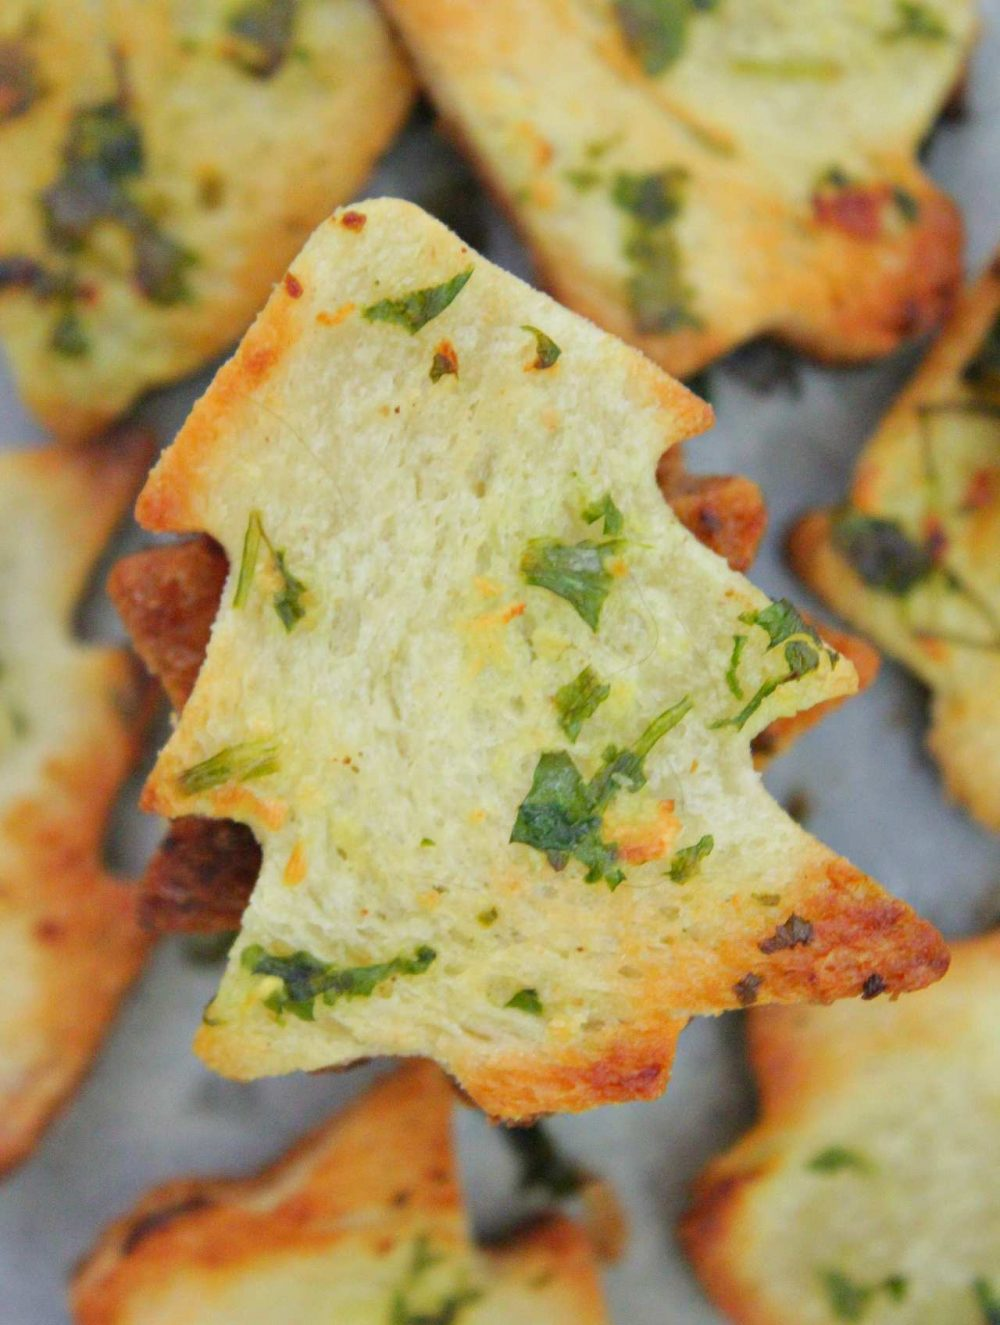 Garlic bread chips cut in the shape of Christmas tree